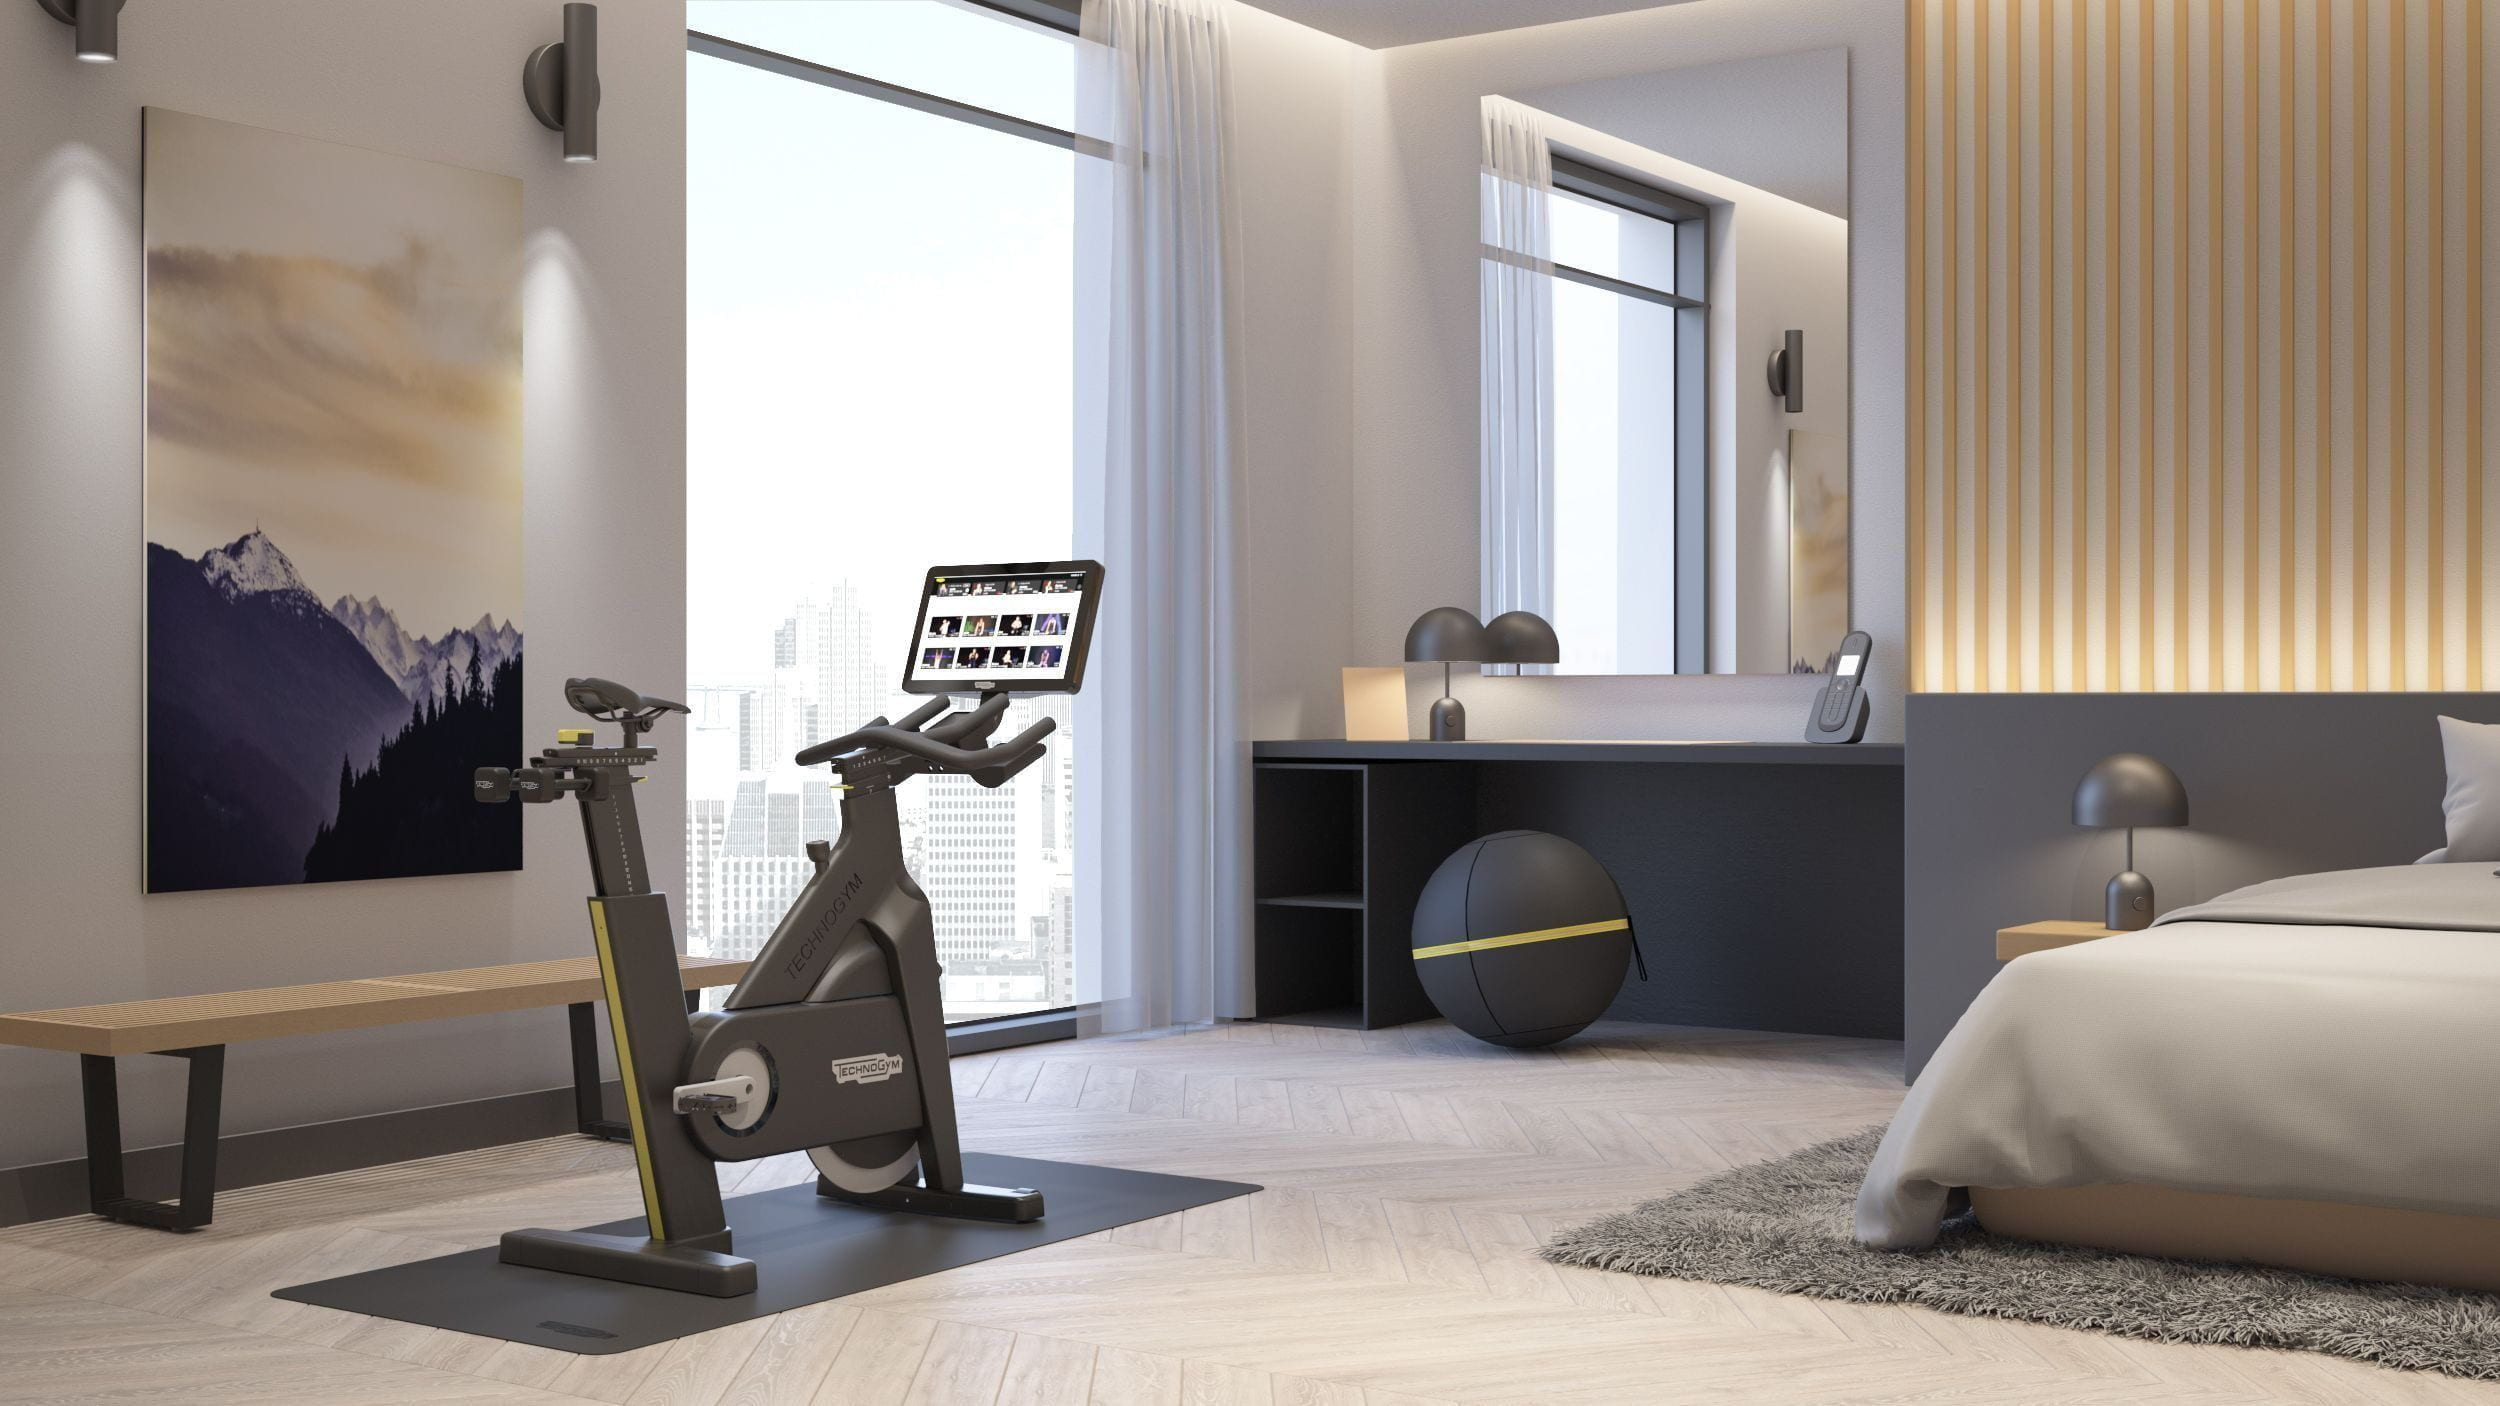 Technogym bike på hotellrommet